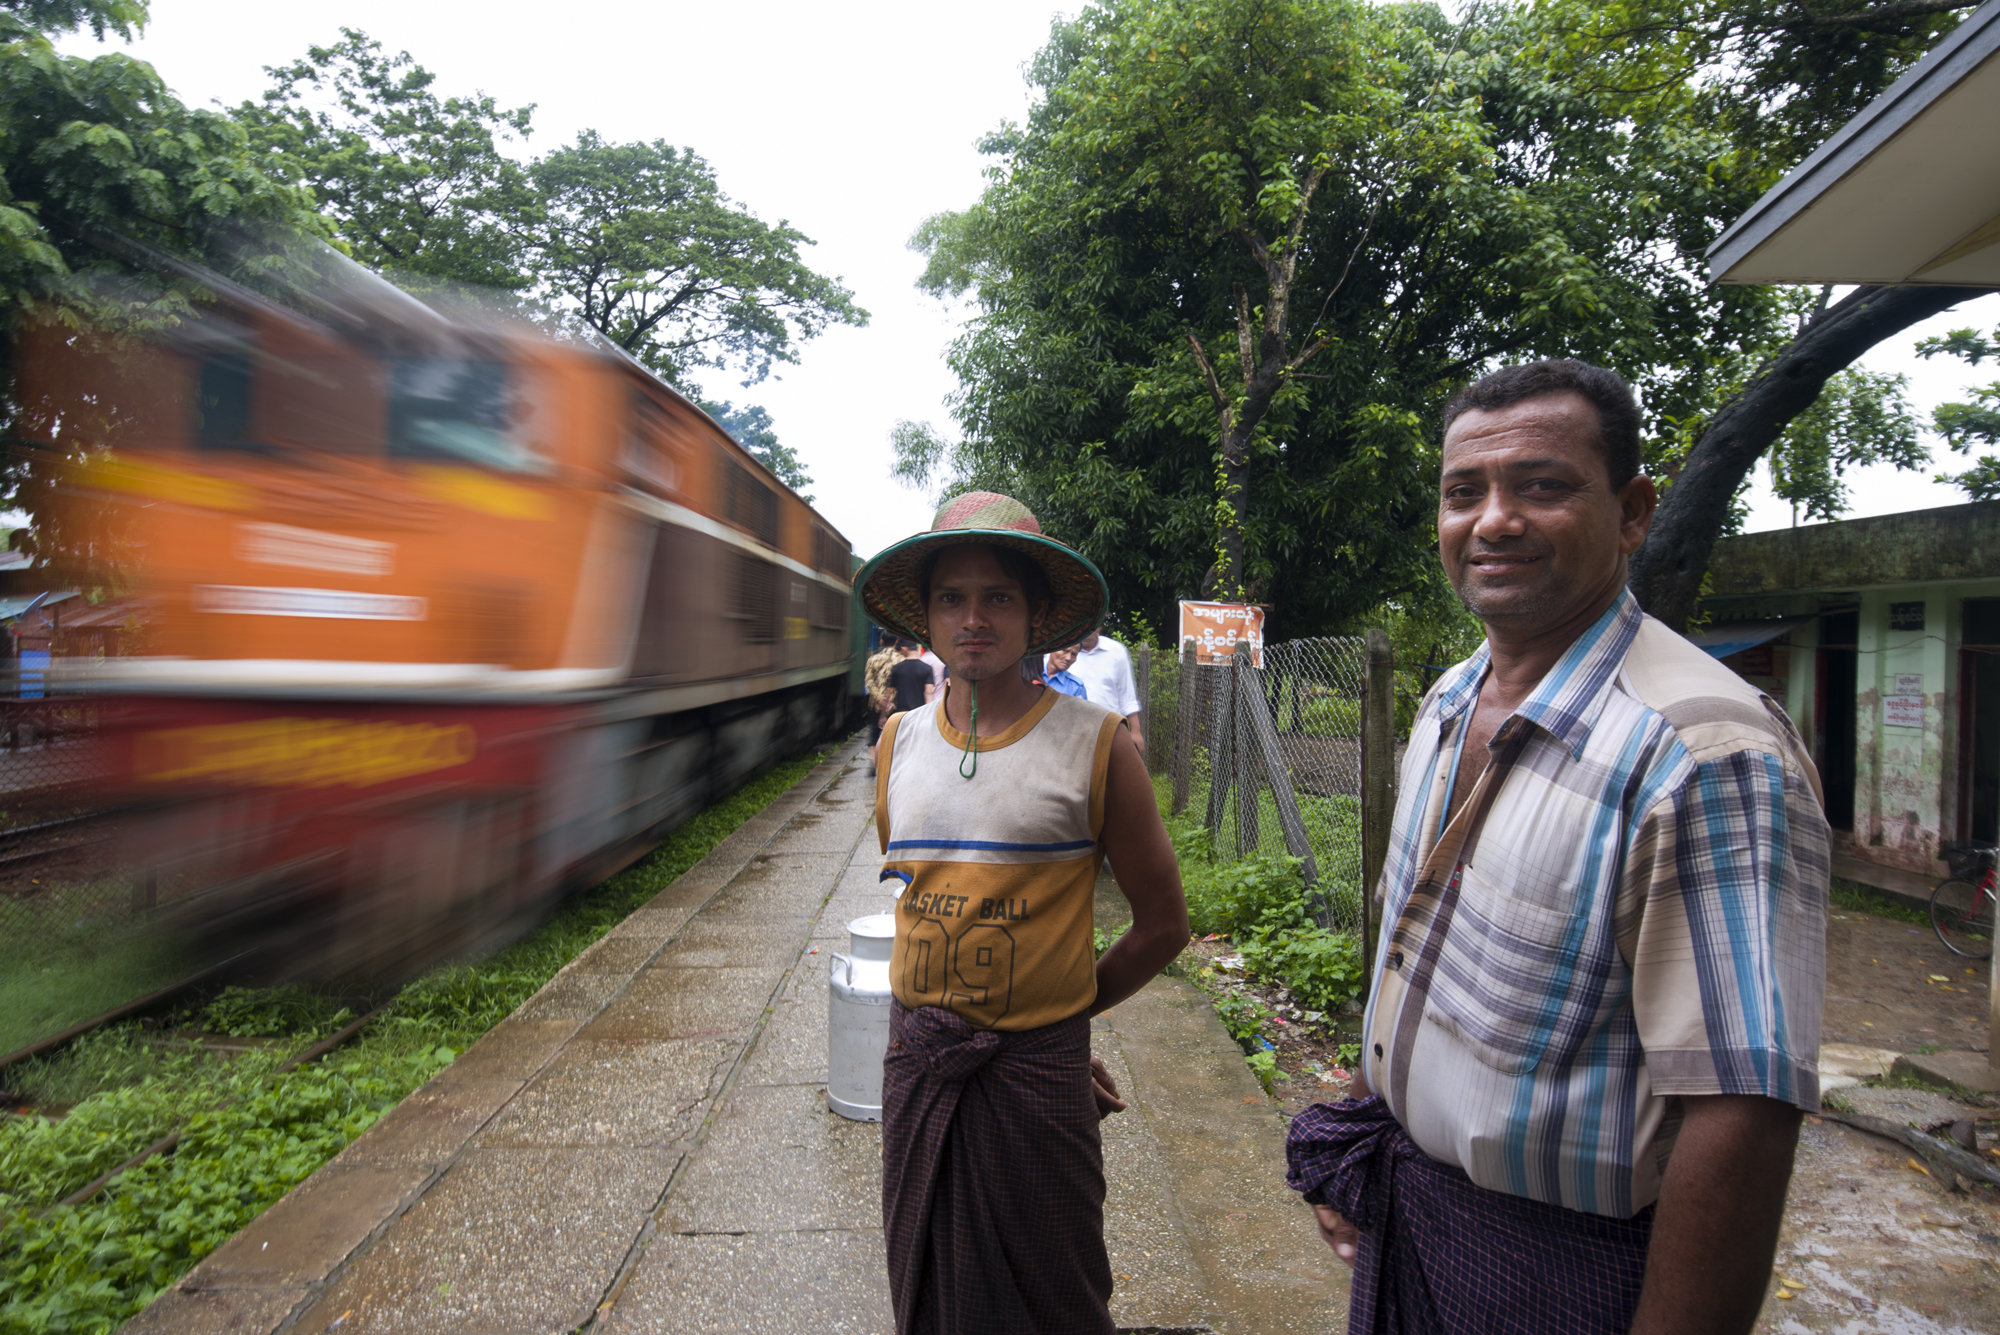 A milk salesman and his employee transport fresh mil from their farm into the city each morning using the train network